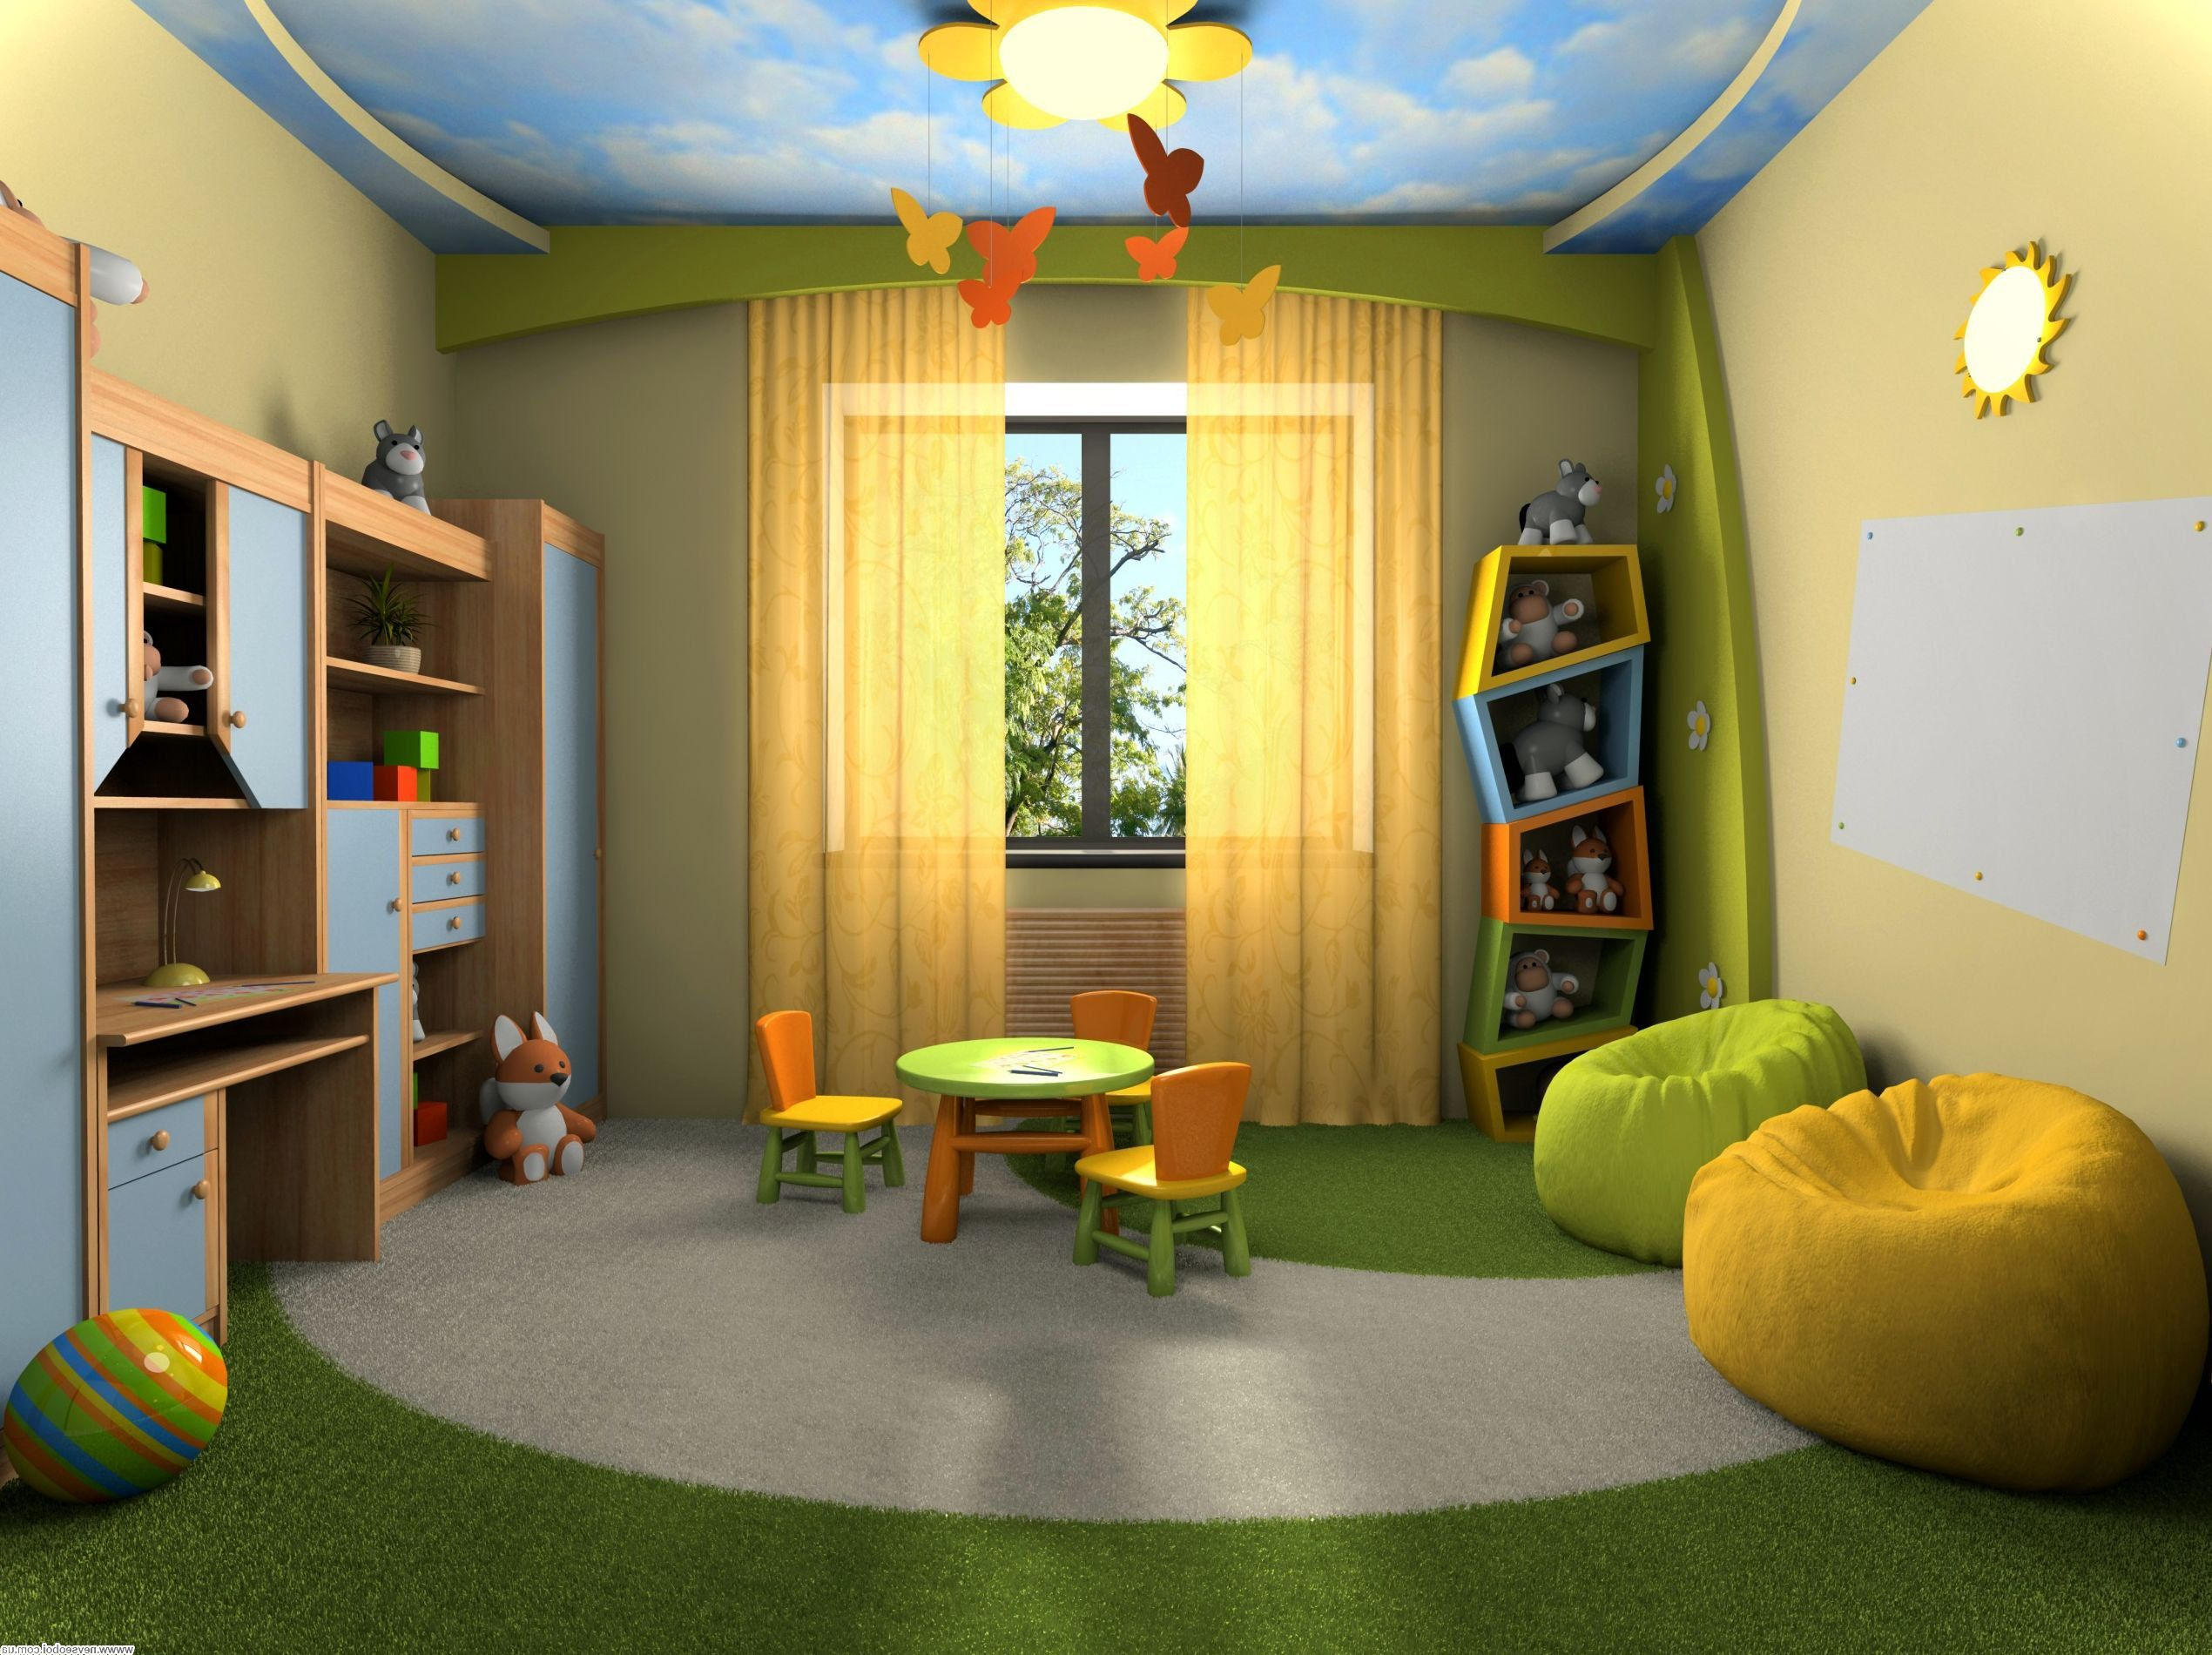 Yellow And Green Bean Bag Placed In Playroom Using Fun Boys Room Decor With Wooden Desk